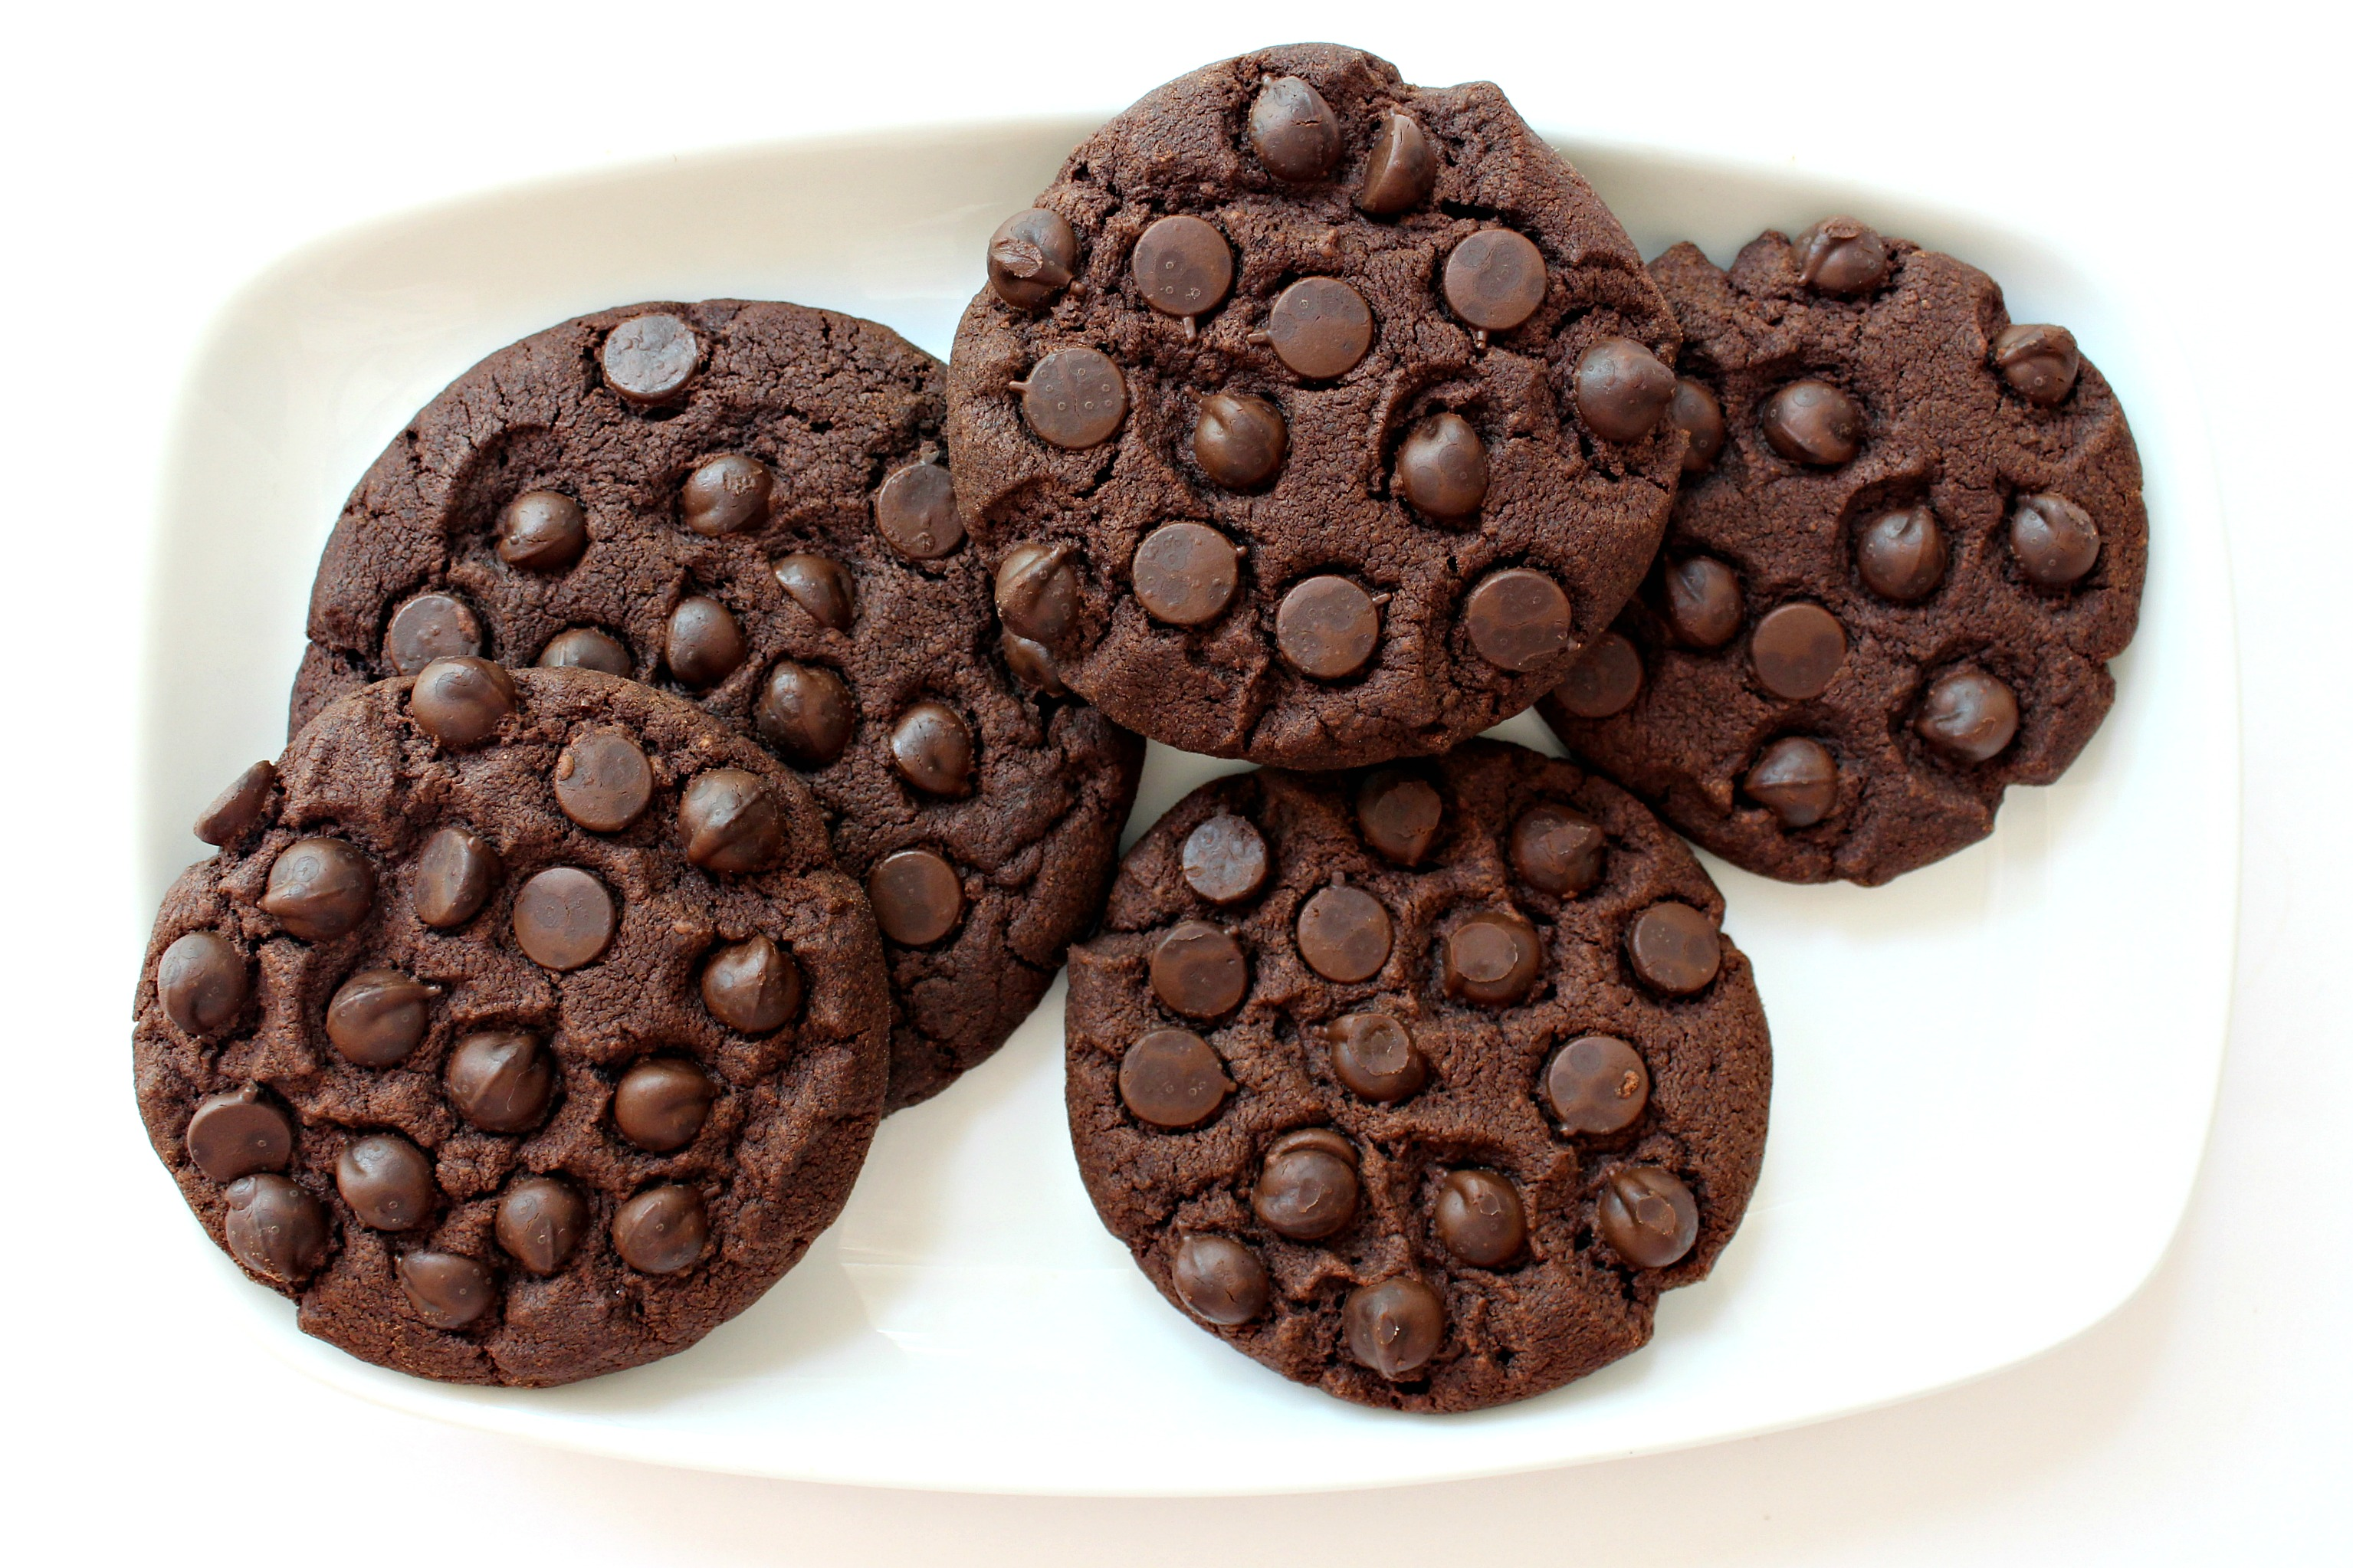 Chocolate Chocolate Chip Shortbread Cookies without sprinkles. Instead, chocolate chips are pressed into the top of the cookies.